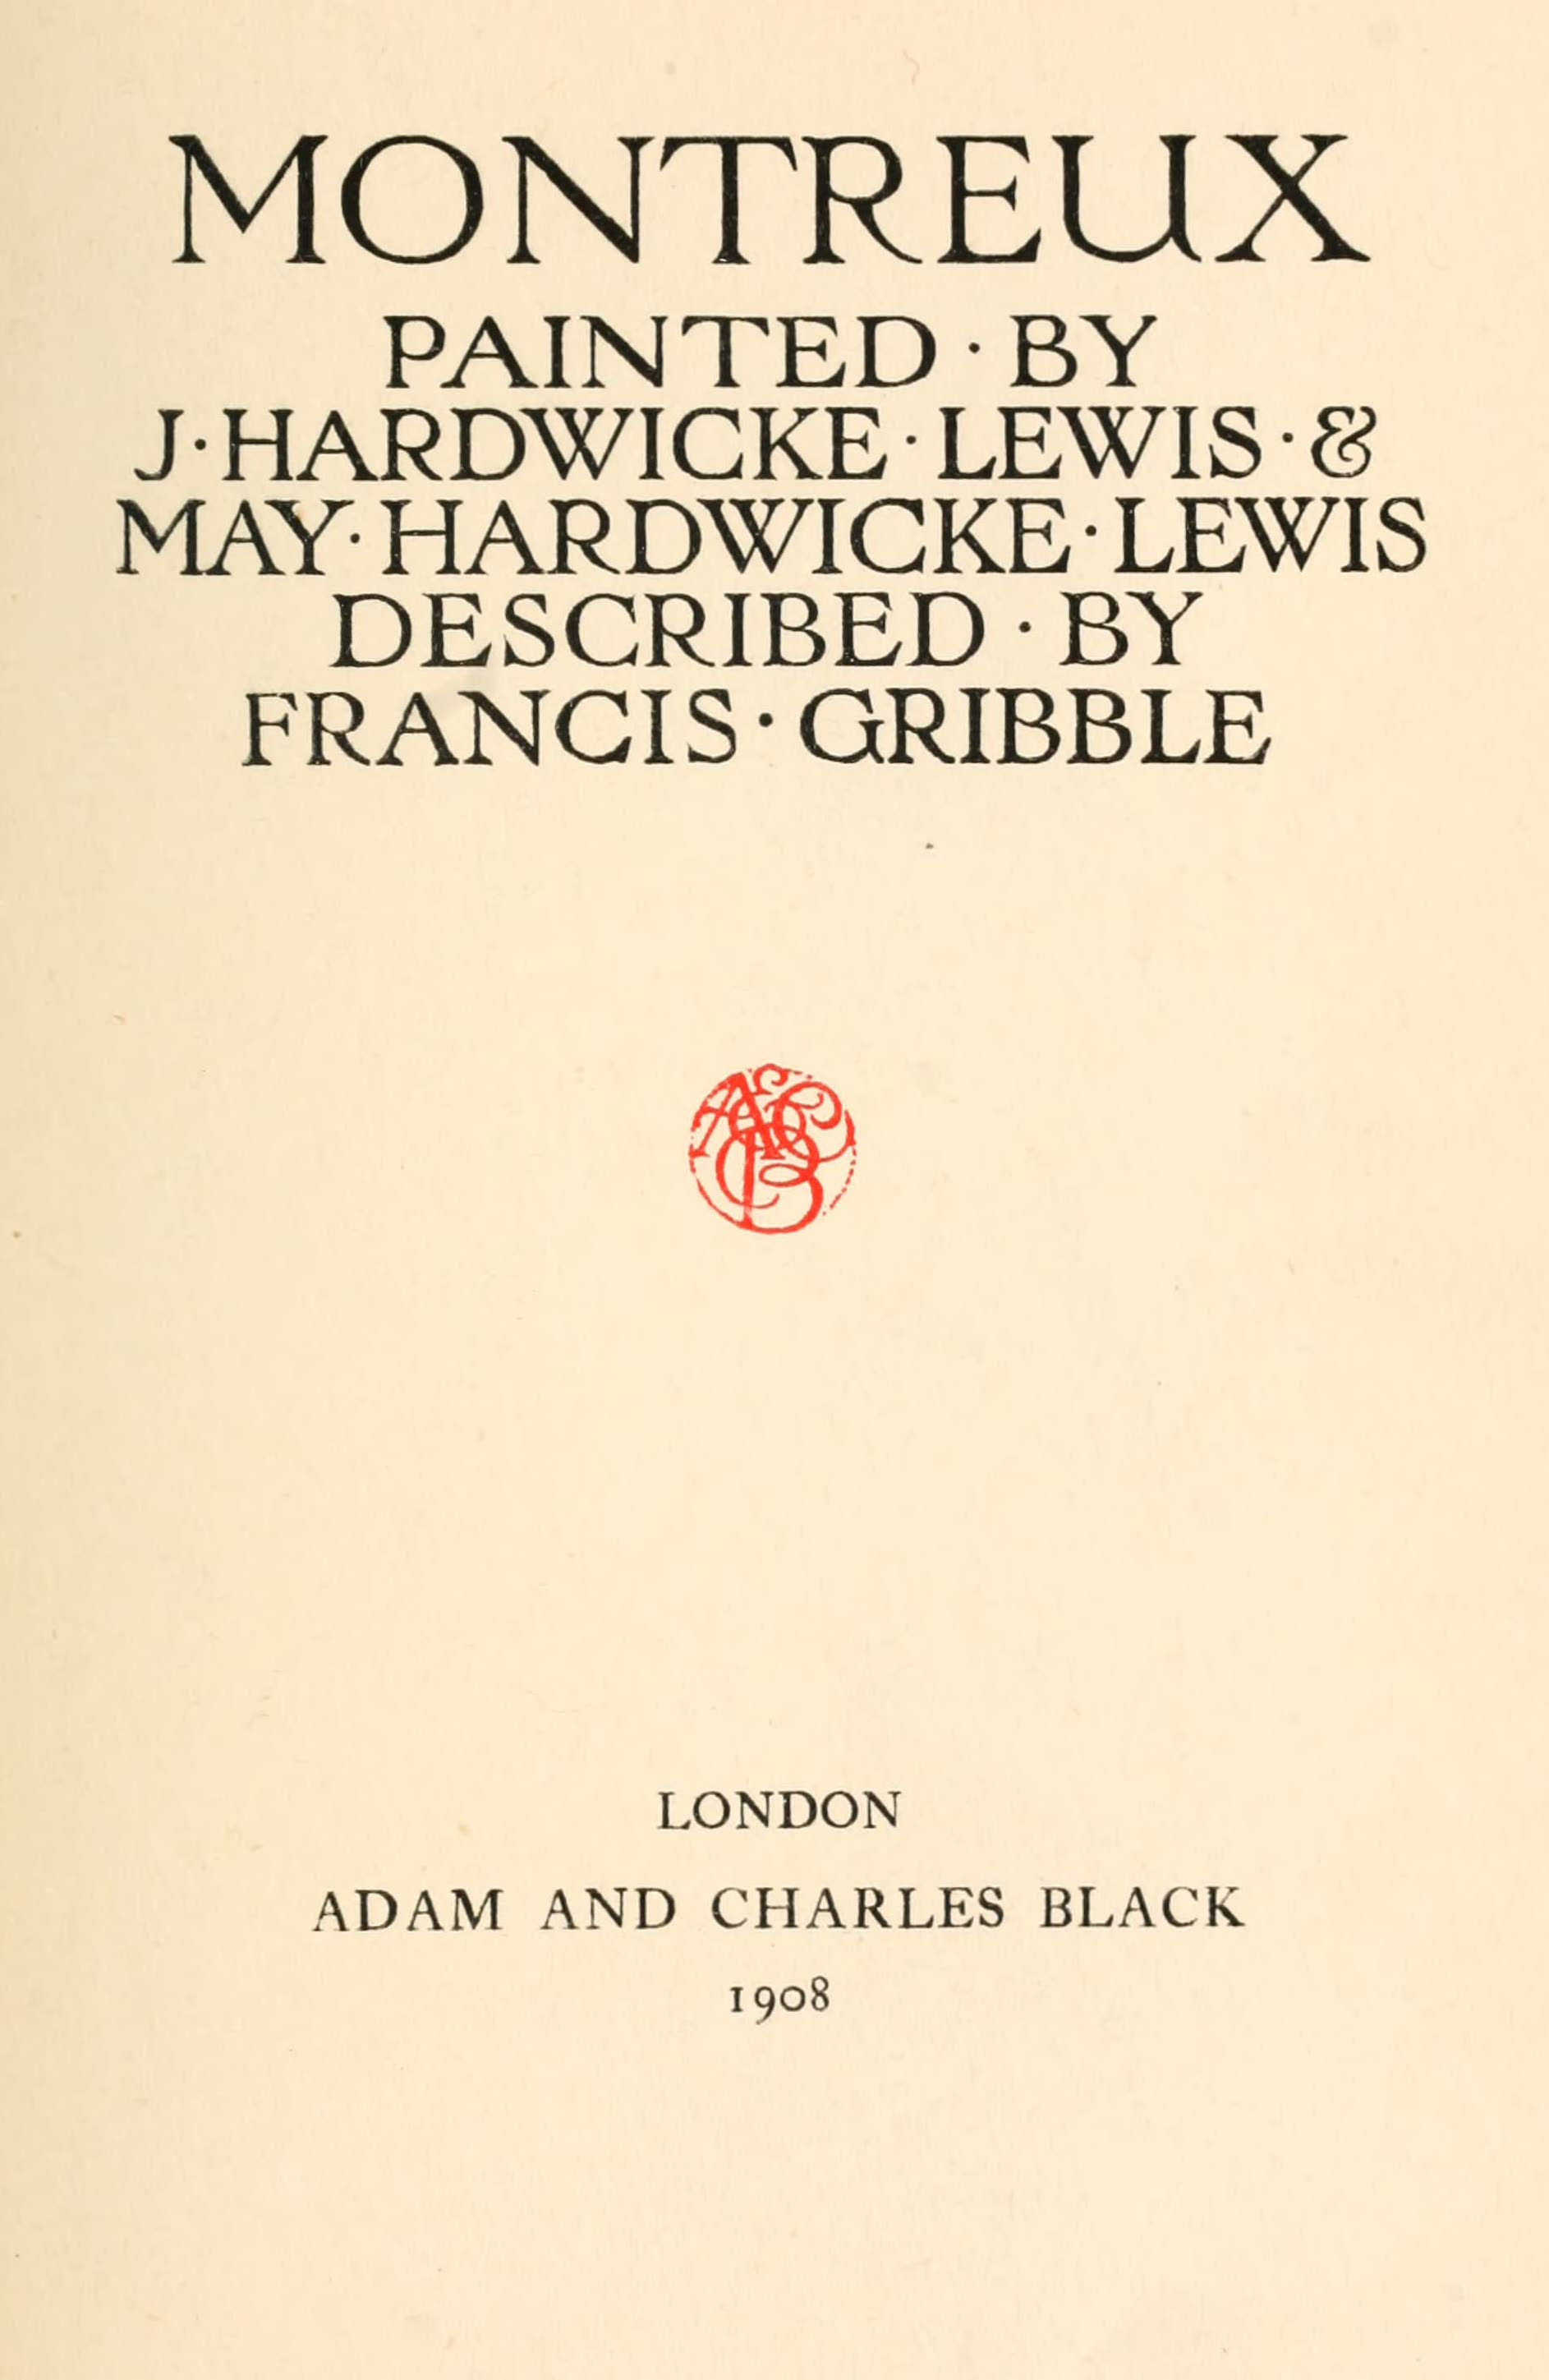 Montreux, Painted and Described - Title Page (1908)